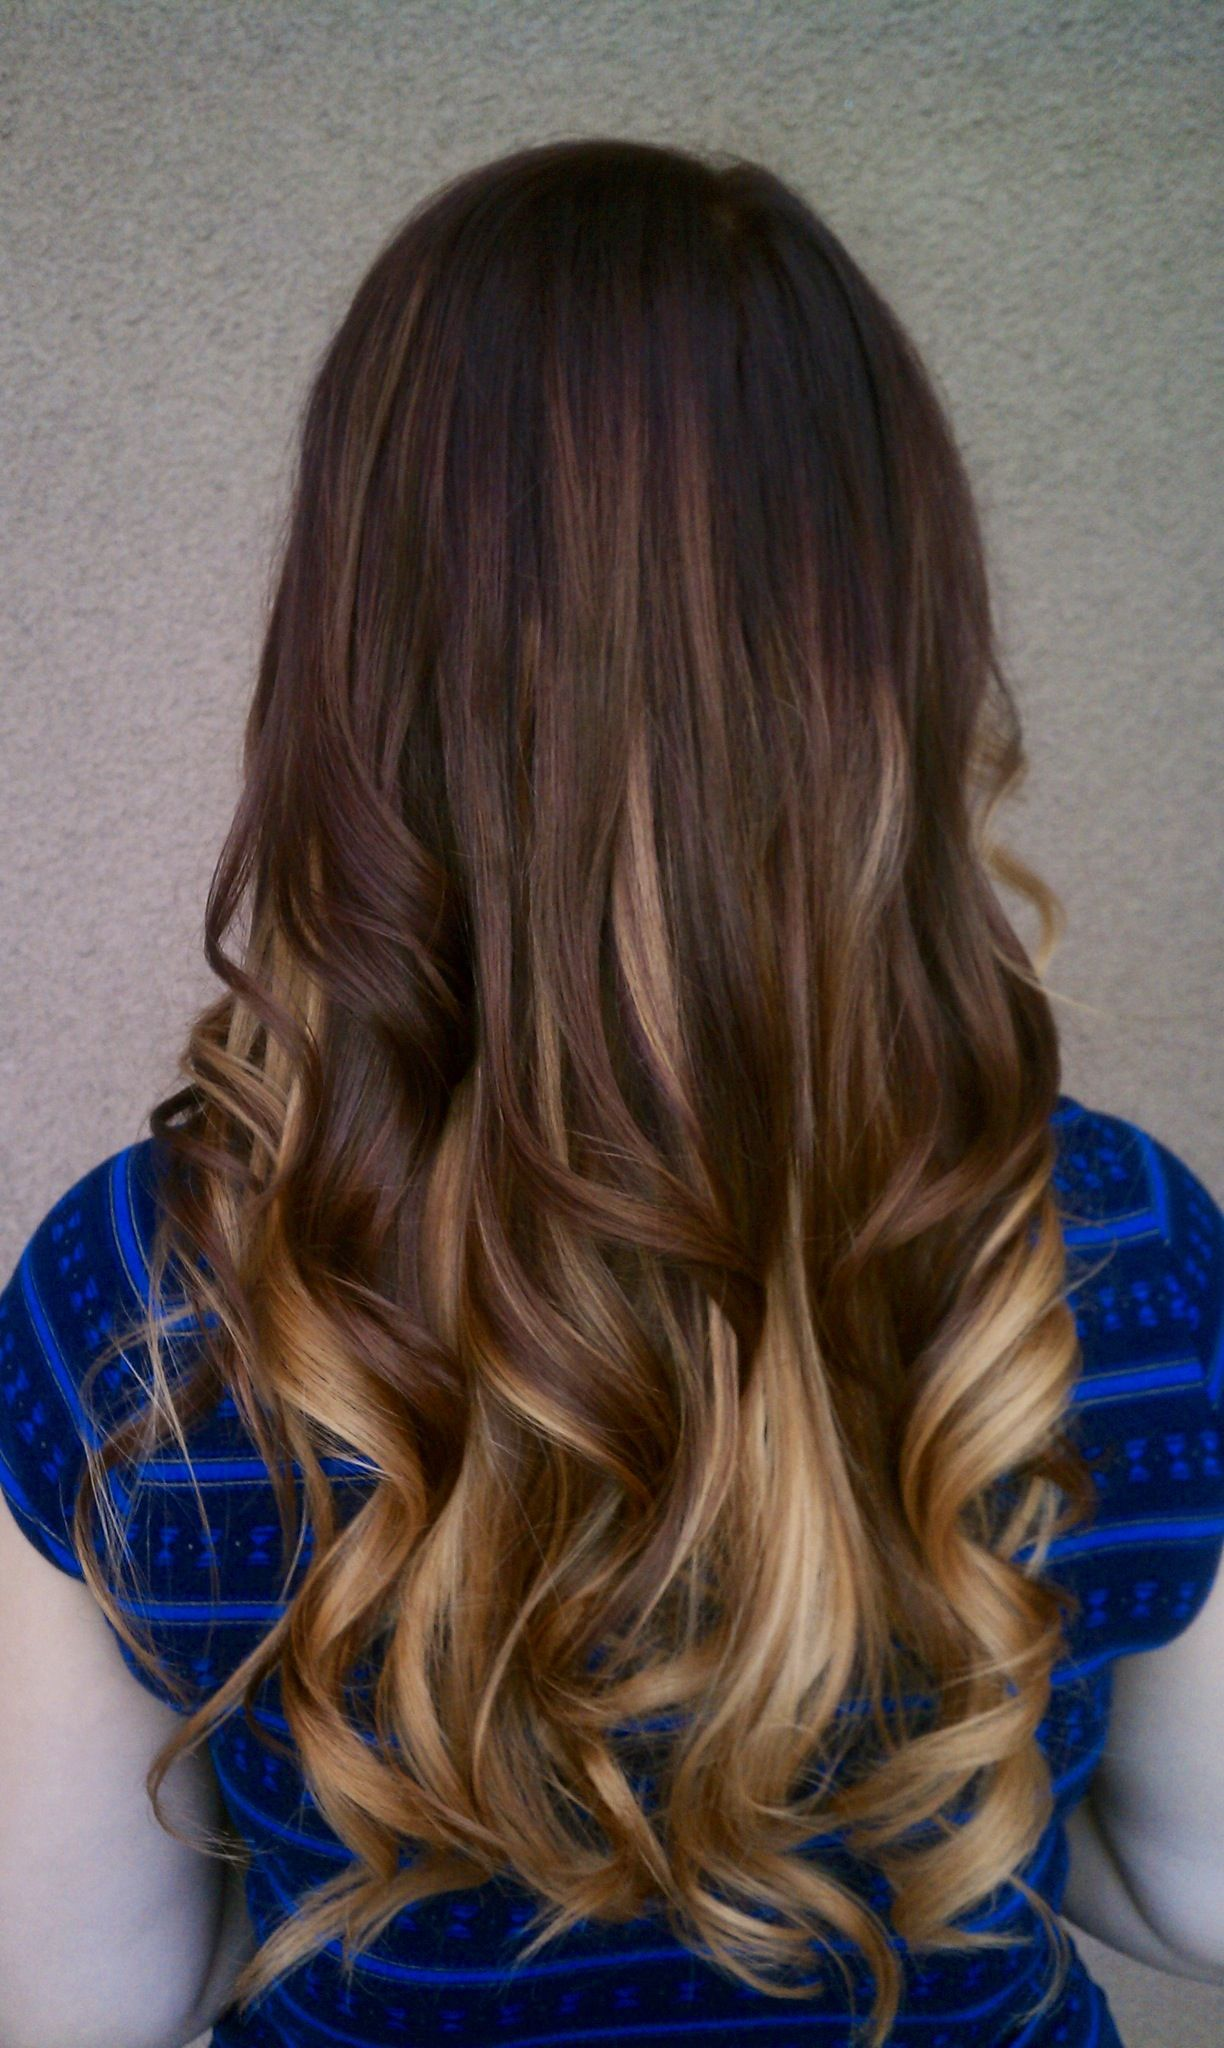 Ombré with red and blonde